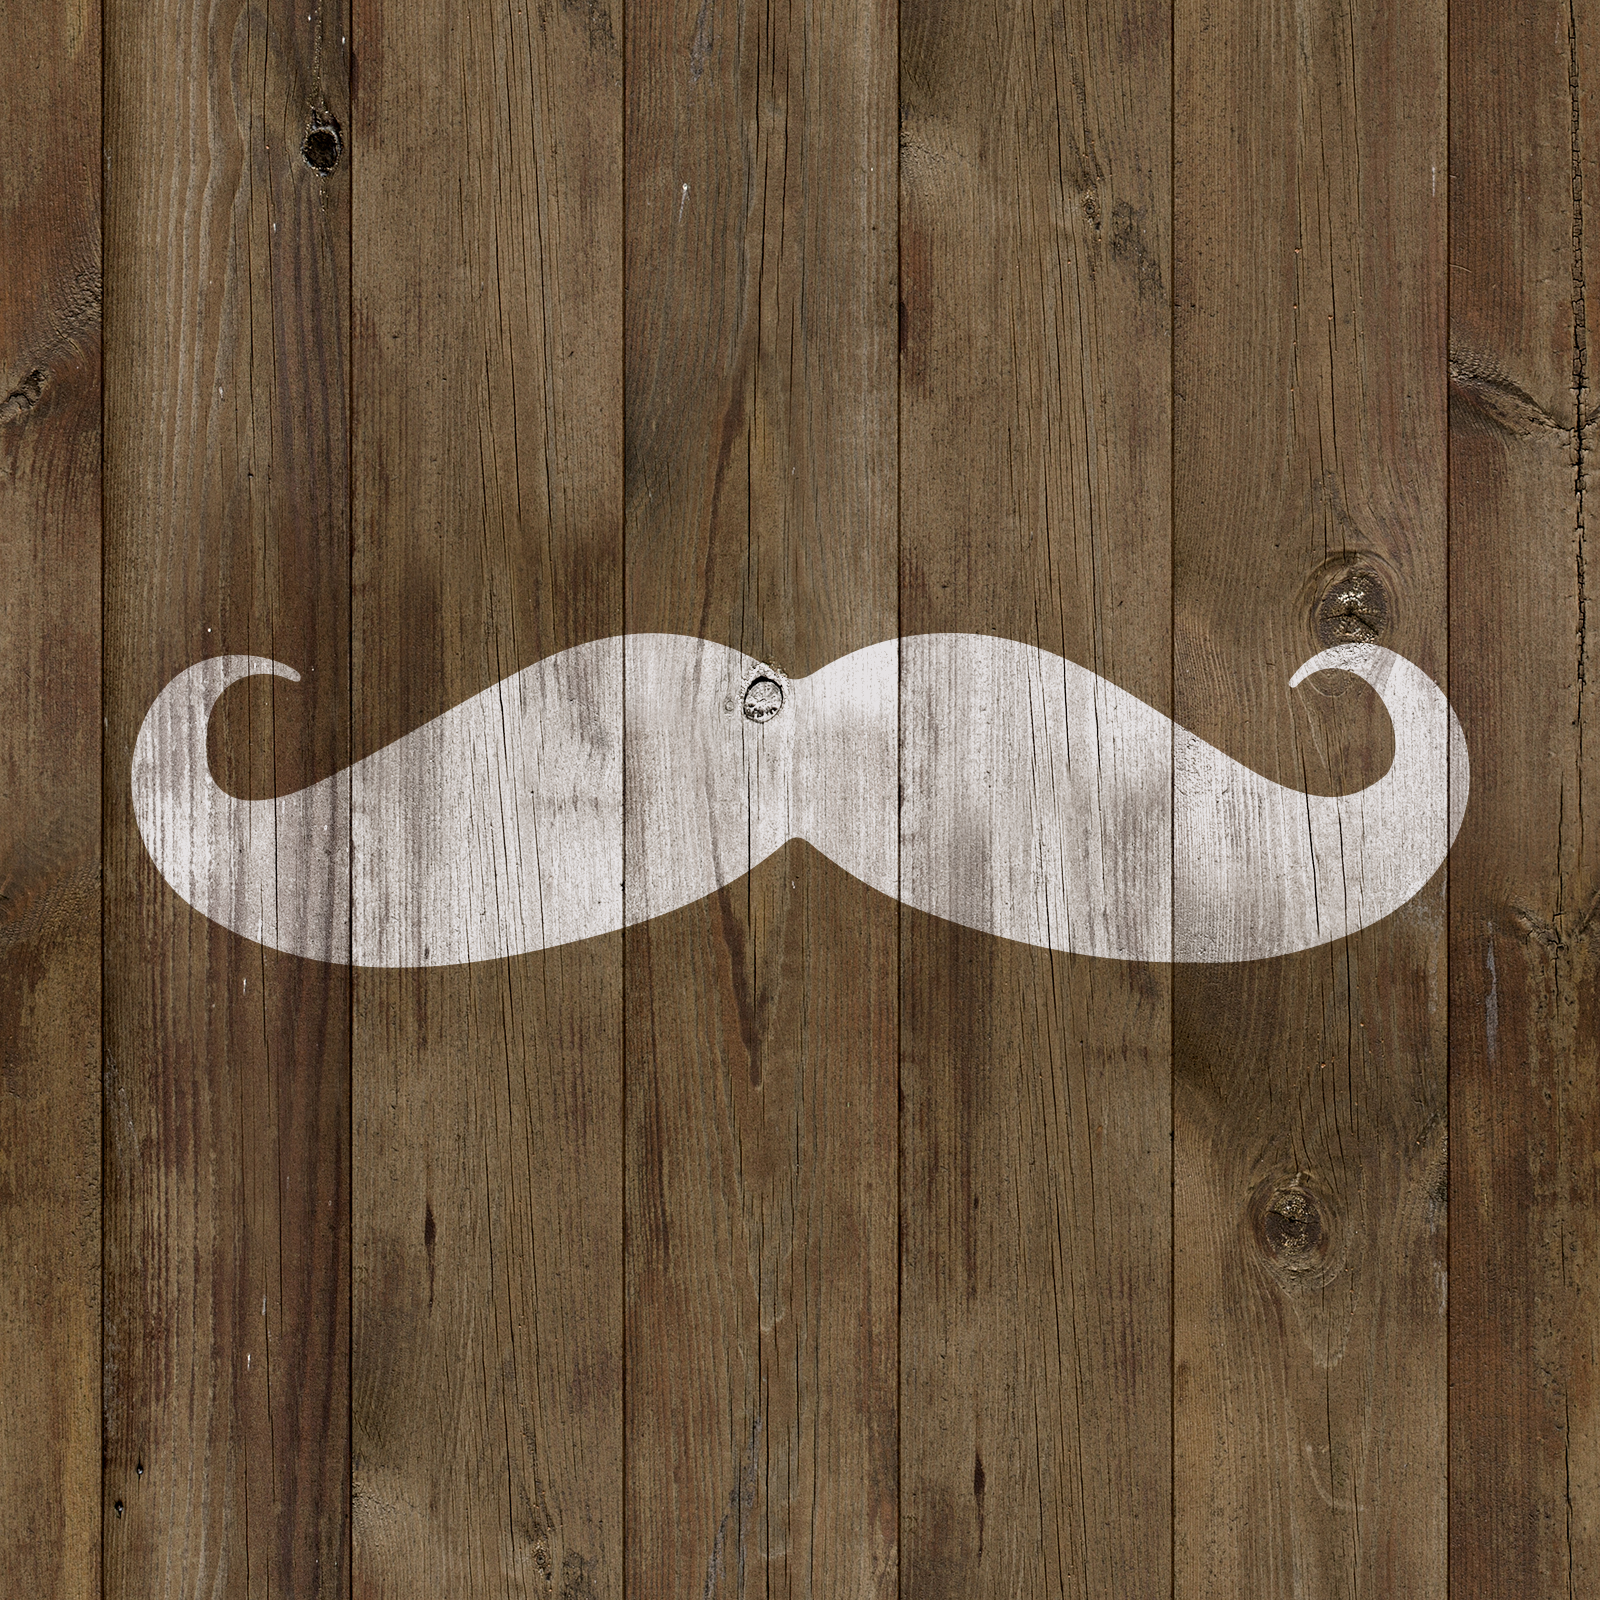 Mustache Stencil - Durable & Reusable Mylar Stencils